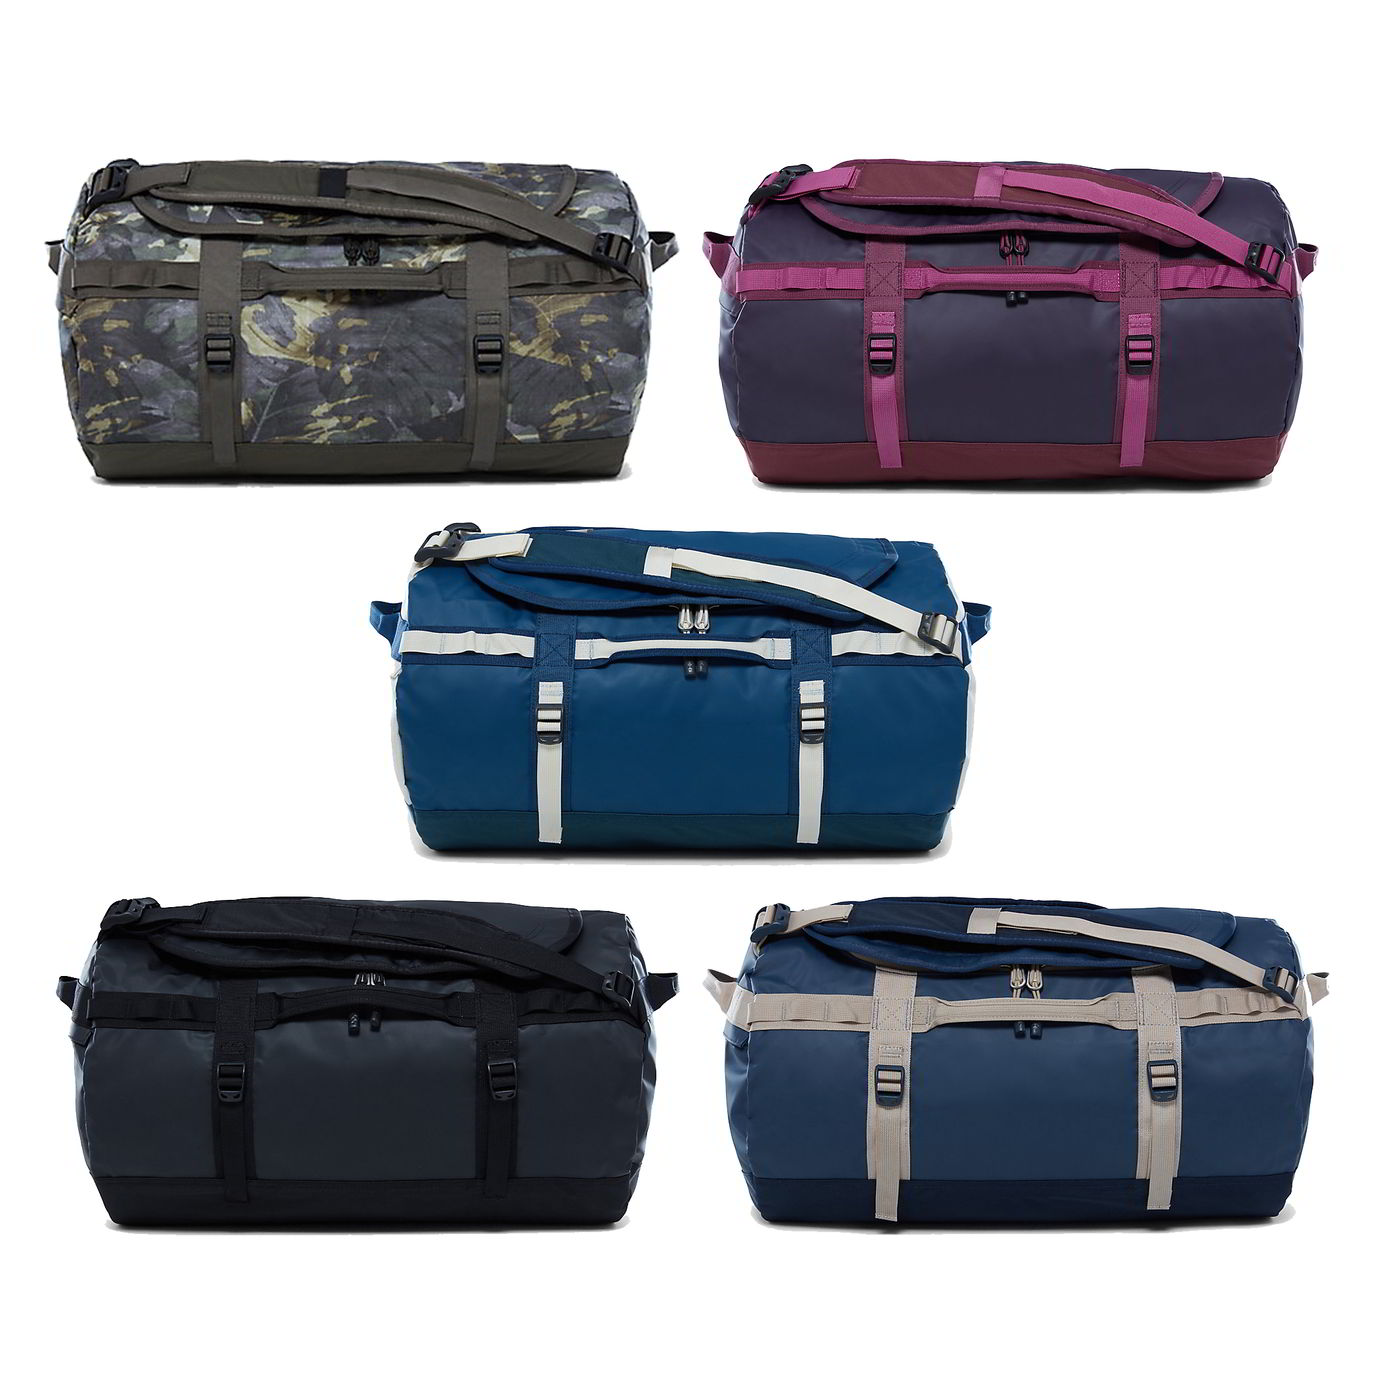 Details zu North Face Base Camp Duffel Bag Small Size Holdall Bag Mens  Womens 9a532c924